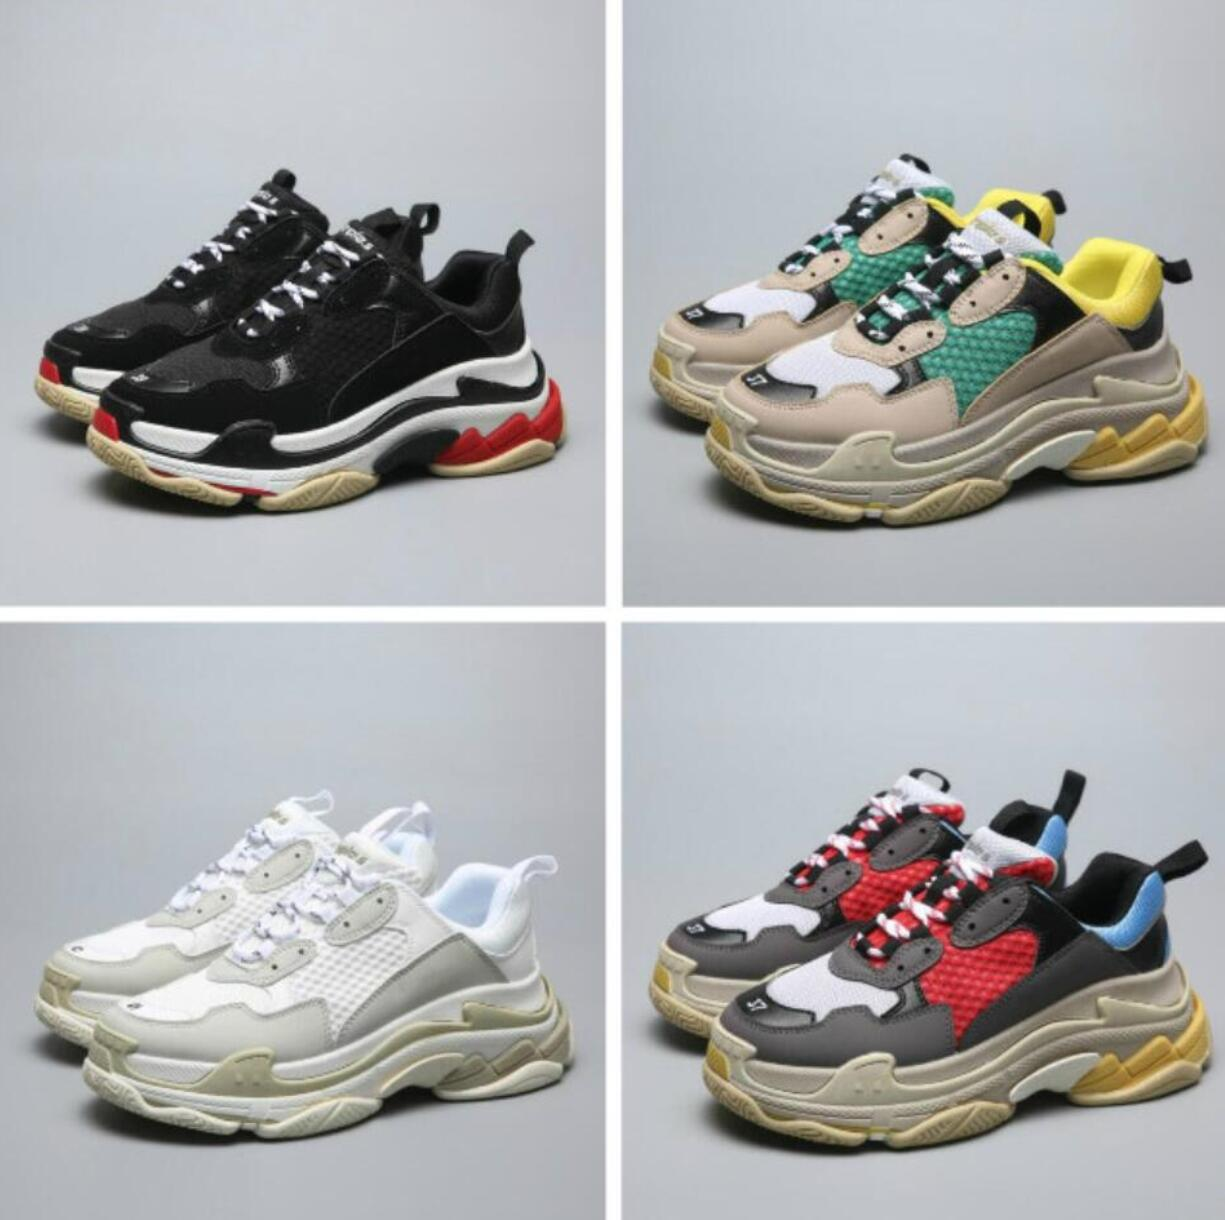 d38abb2cc 2019 NEW Designer Daddy Trip w Walking Shoes Dad Shoes BL Triple S 17FW  Sneakers for Men Women Vintage Kanye West Old Grandpa Trainer Outdoo